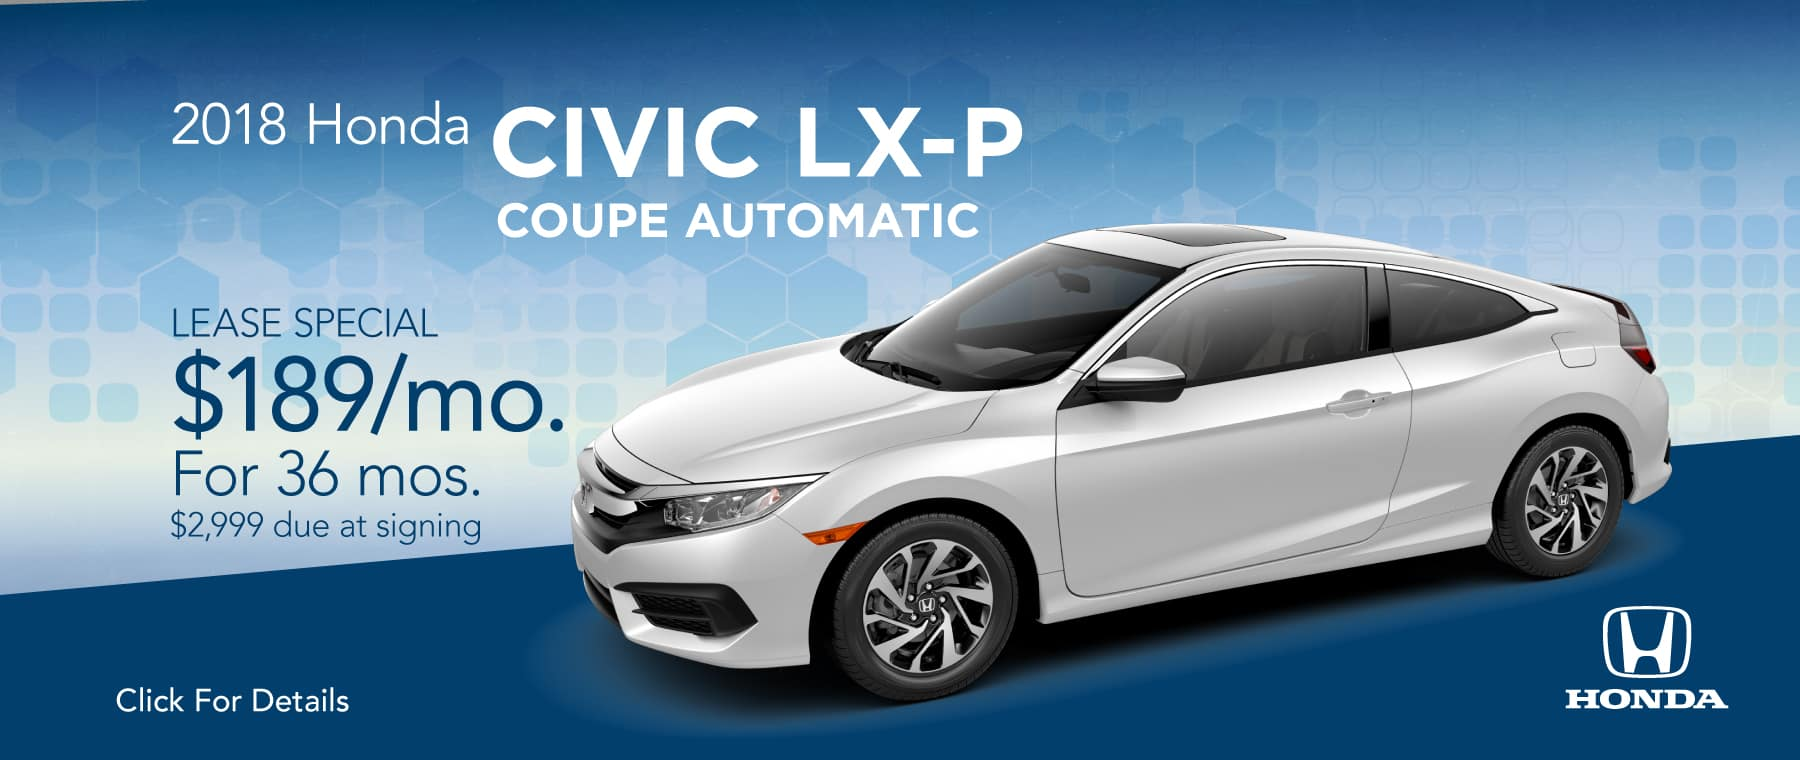 2018 Honda Civic LX-P Coupe Automatic  $189/mo. For 36 mos. $2,999 due at signing*